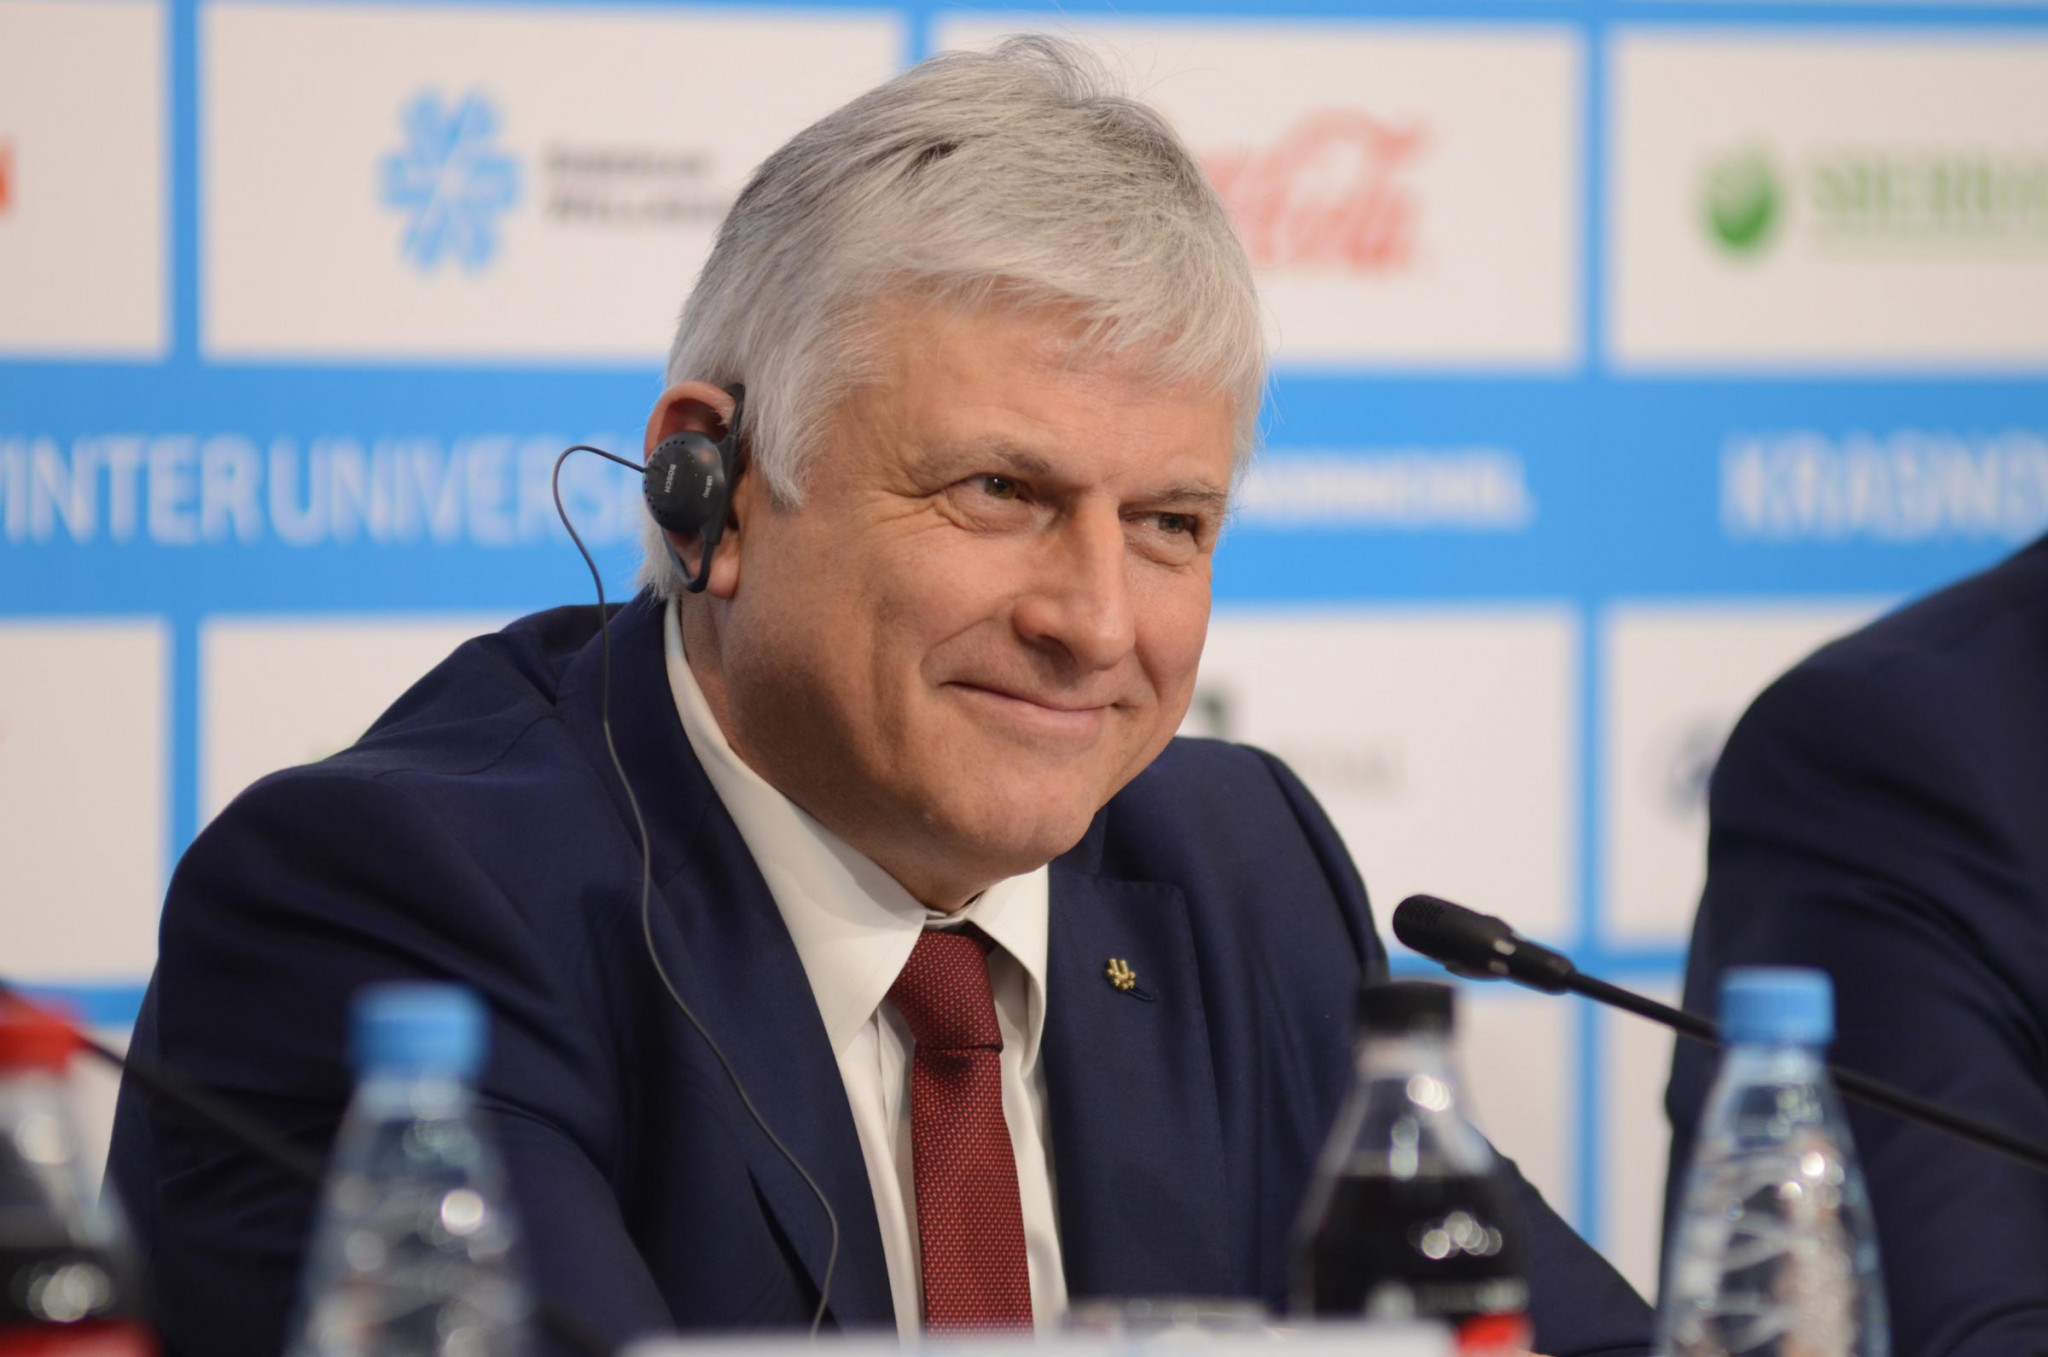 FISU's secretary general and chief executive, Eric Saintrond, discussed how the Universiade could be used as a launchpad by Krasnoyarsk to host larger events ©Krasnoyarsk 2019